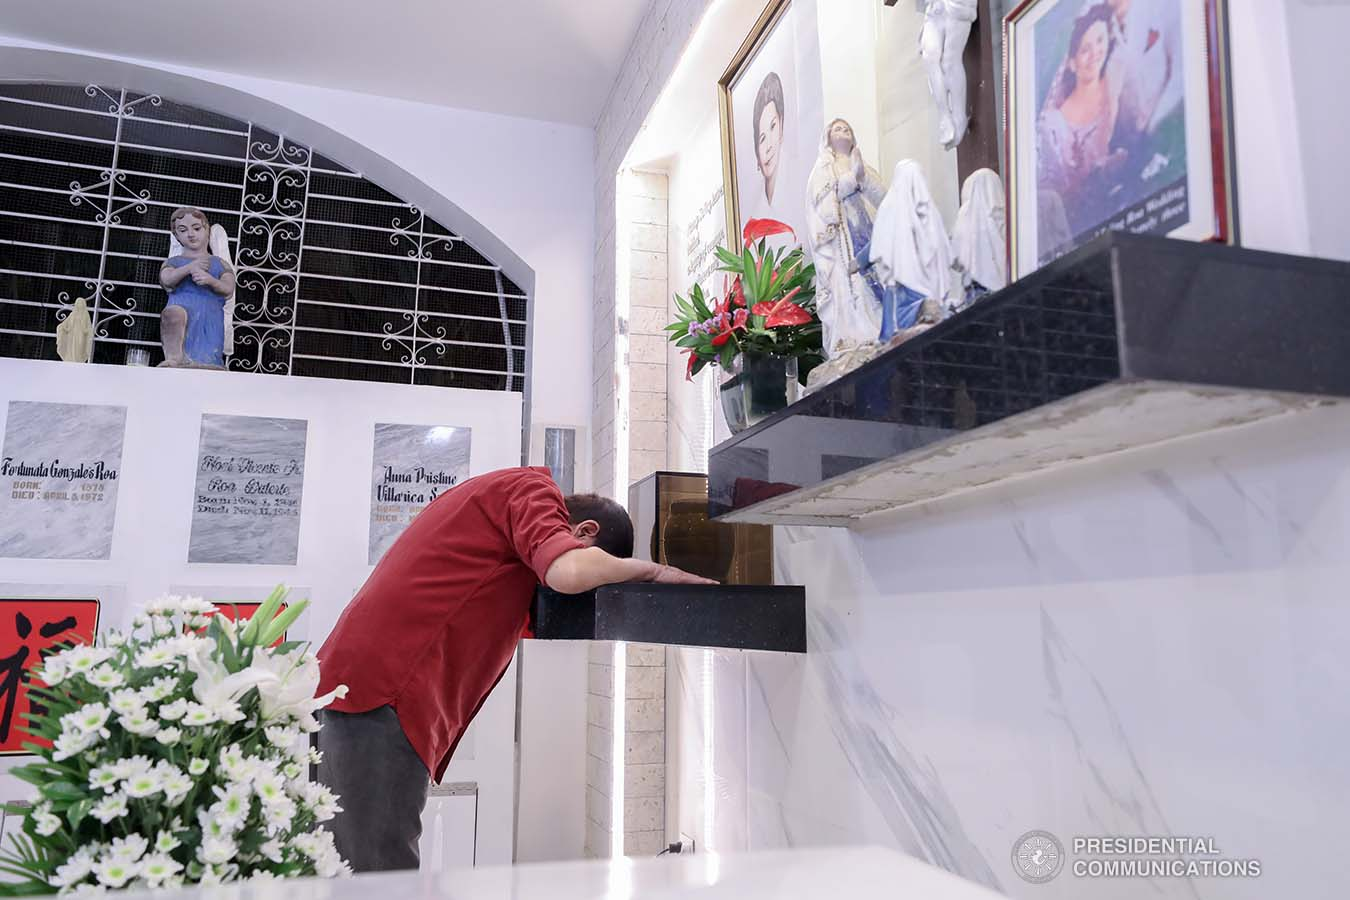 President Rodrigo Roa Duterte, before heading to Manila, visits the resting place of his parents, Vicente Duterte, the former governor of then undivided Davao Province, and Soledad Duterte, one of Davao's respected civic leaders, at the Roman Catholic Cemetery in Davao City on February 21, 2021. The President consistently visits his departed loved ones even when he was still mayor of Davao City. RICHARD MADELO/ PRESIDENTIAL PHOTO